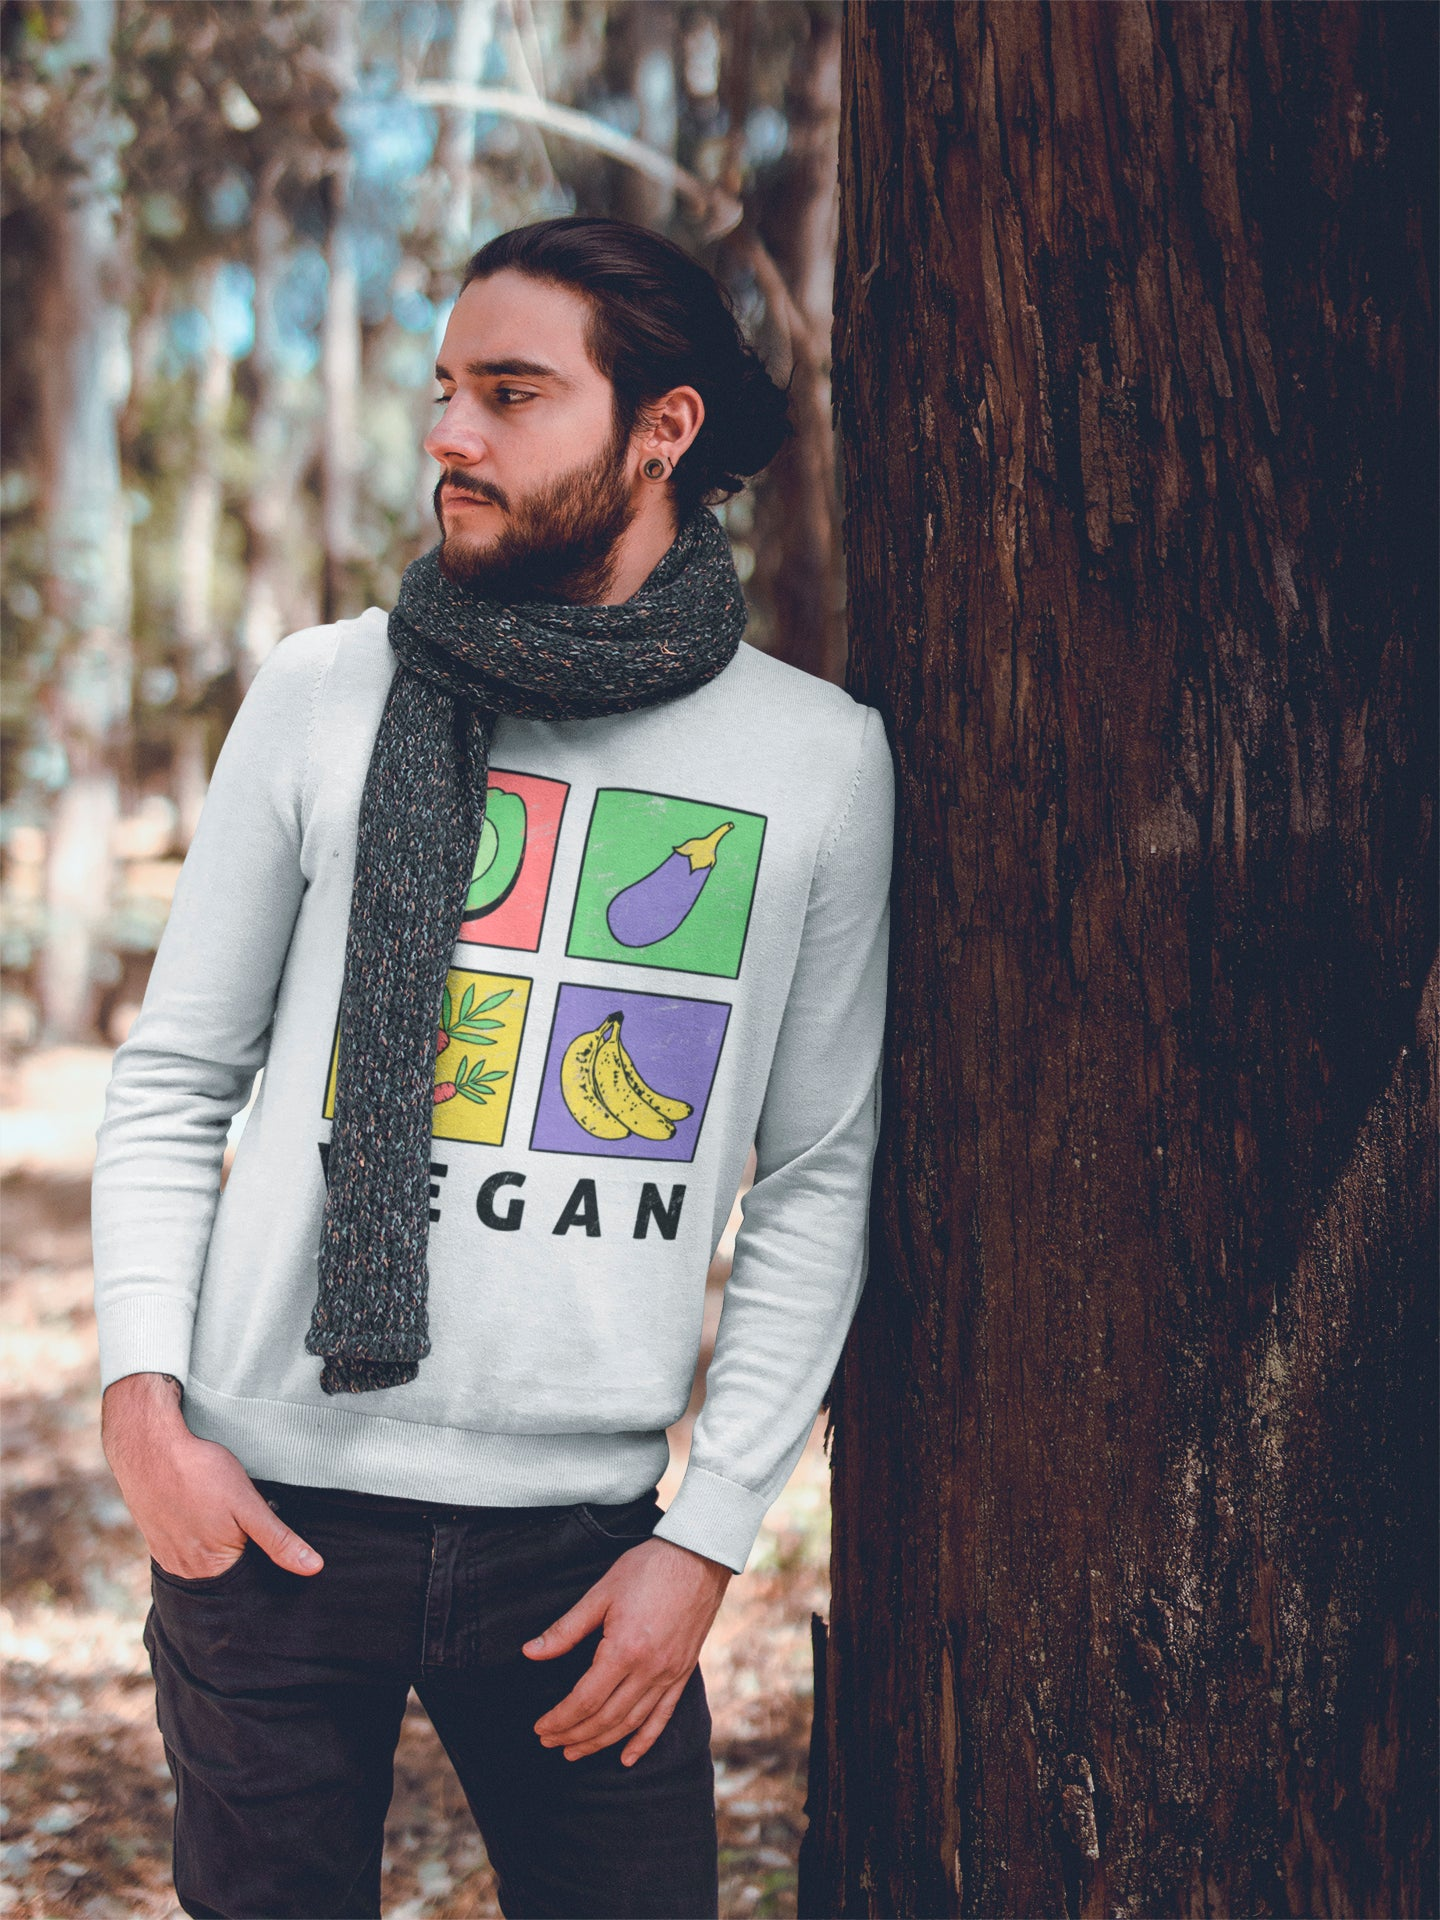 Vegan sweatshirt for man